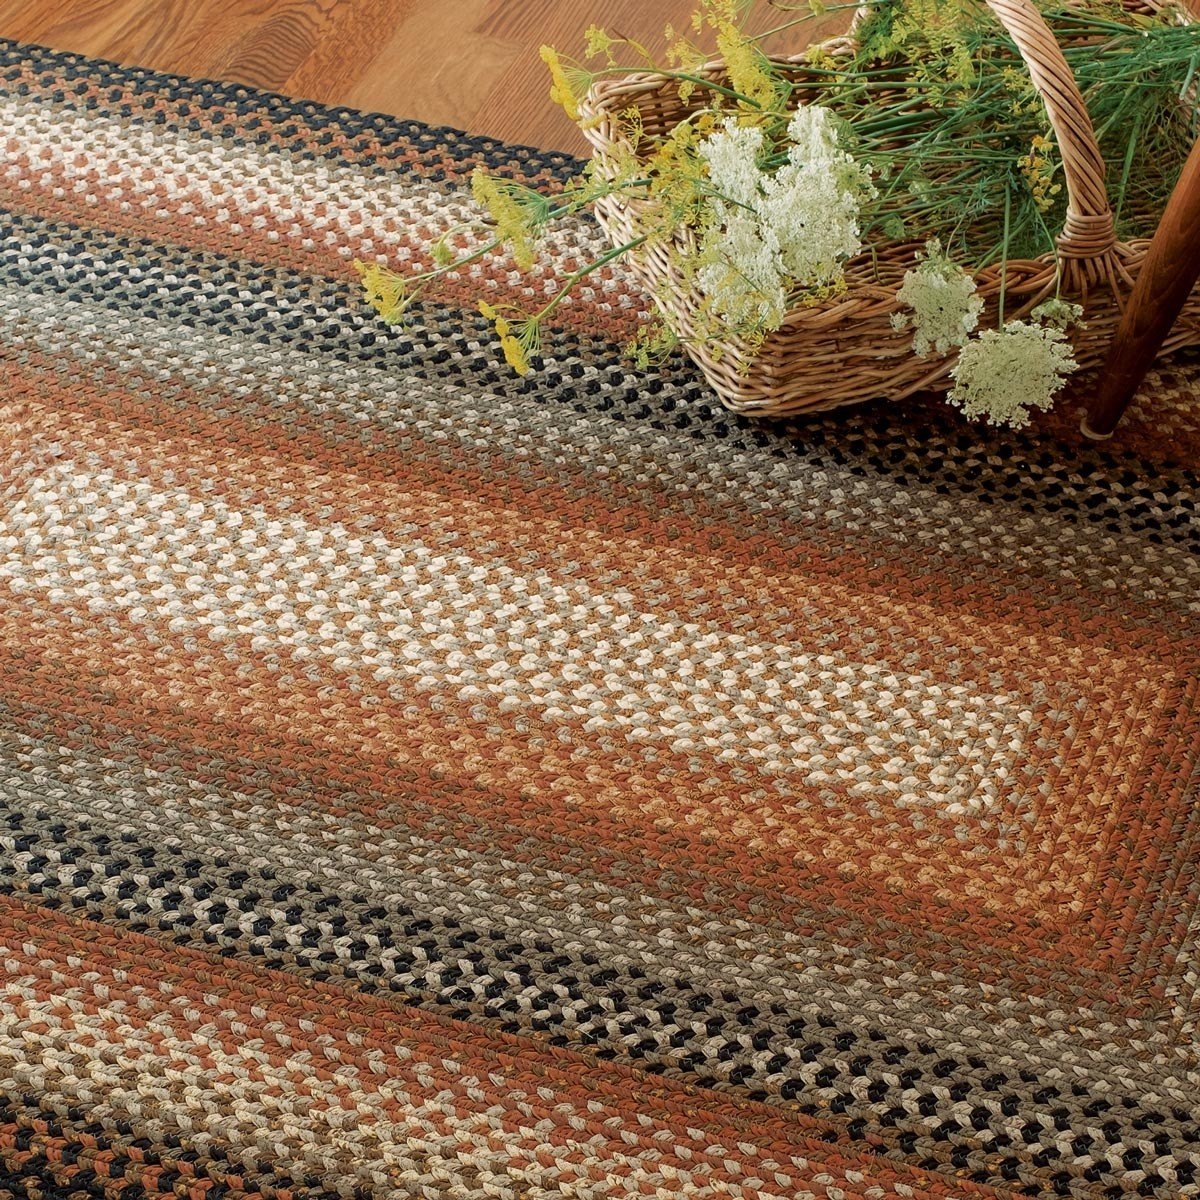 Used Oval Braided Rugs: Cocoa Bean Cotton Braided Rugs